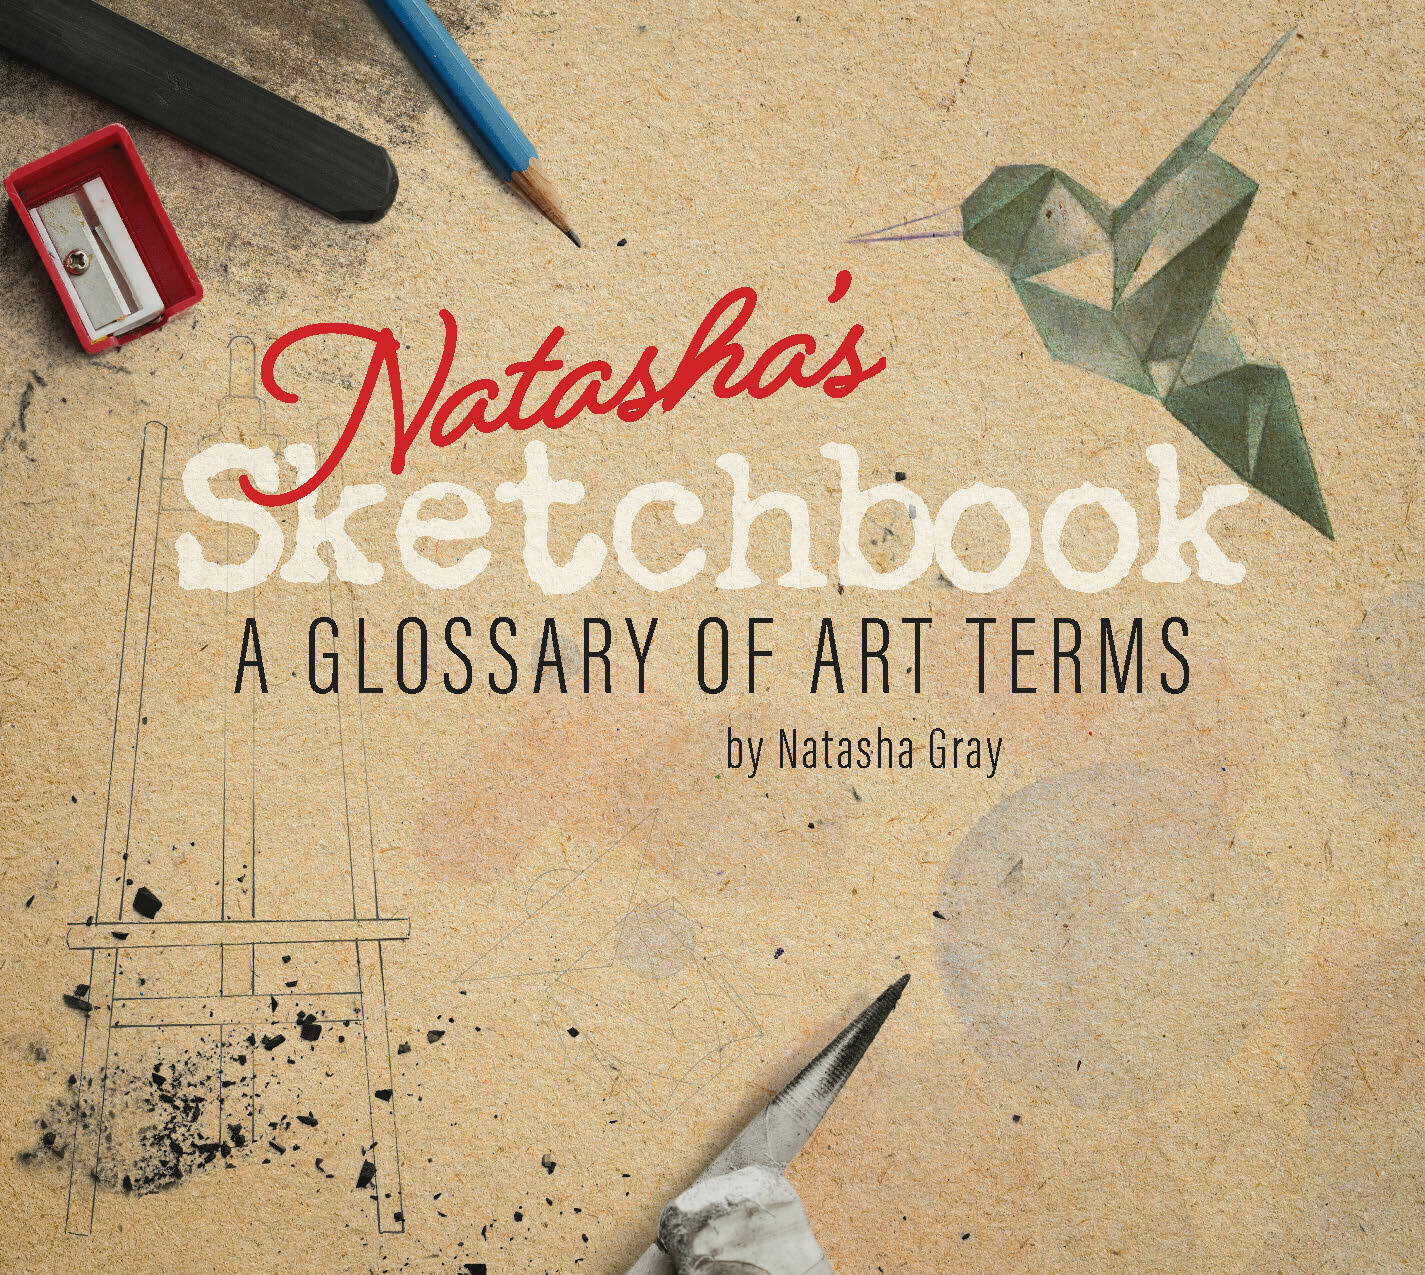 Natasha's Sketchbook – A Glossary of Art Terms